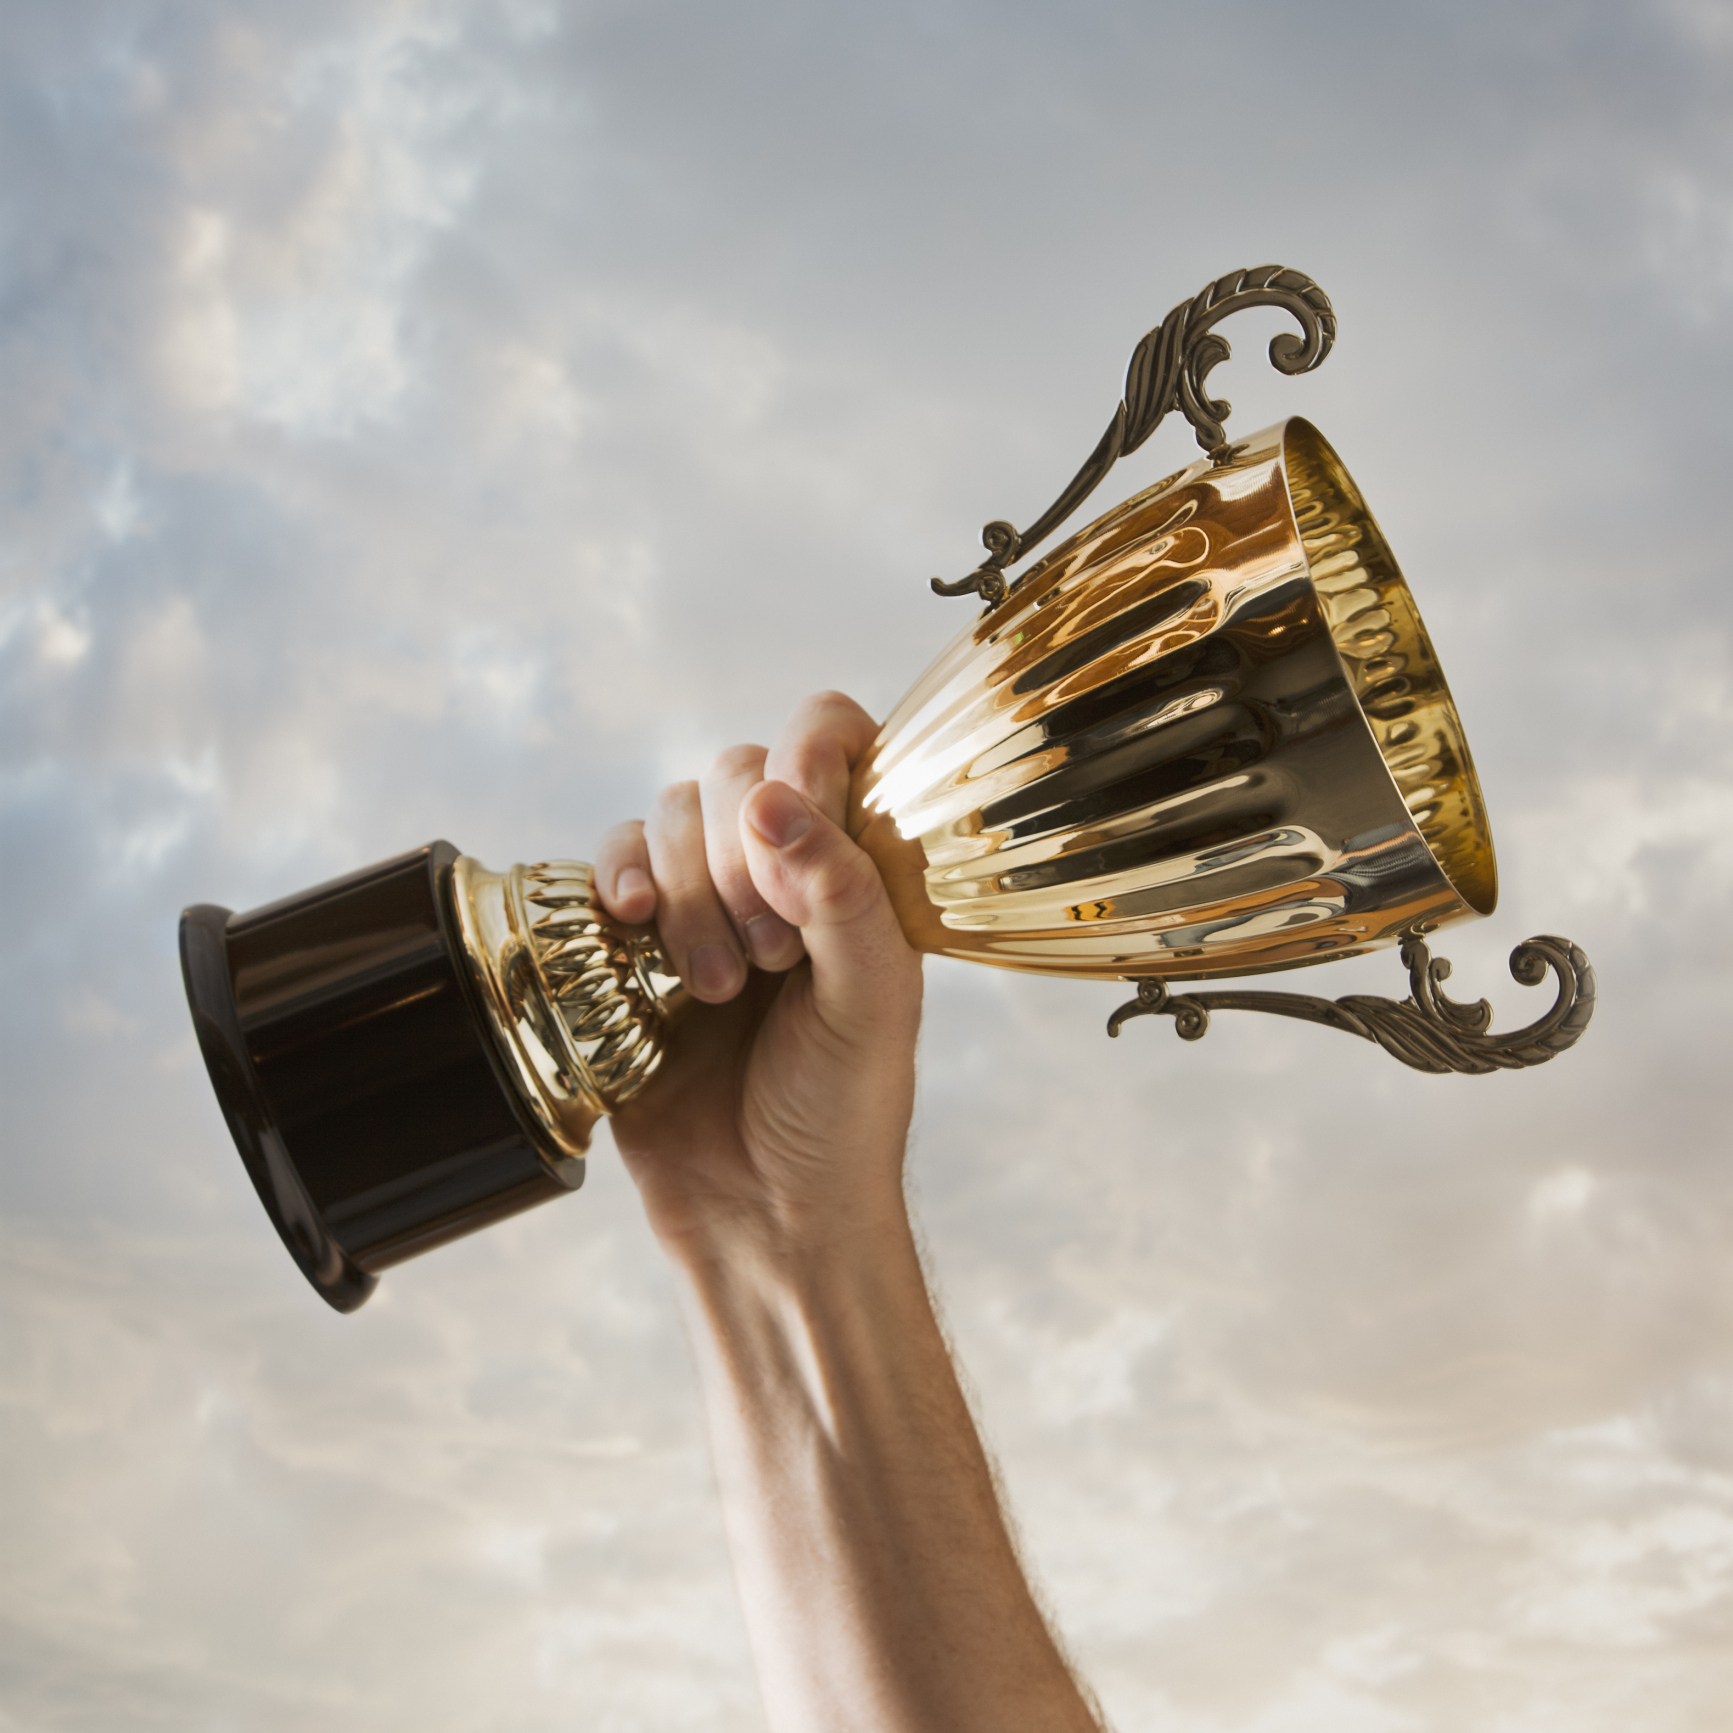 Why I Hate Participation Trophies